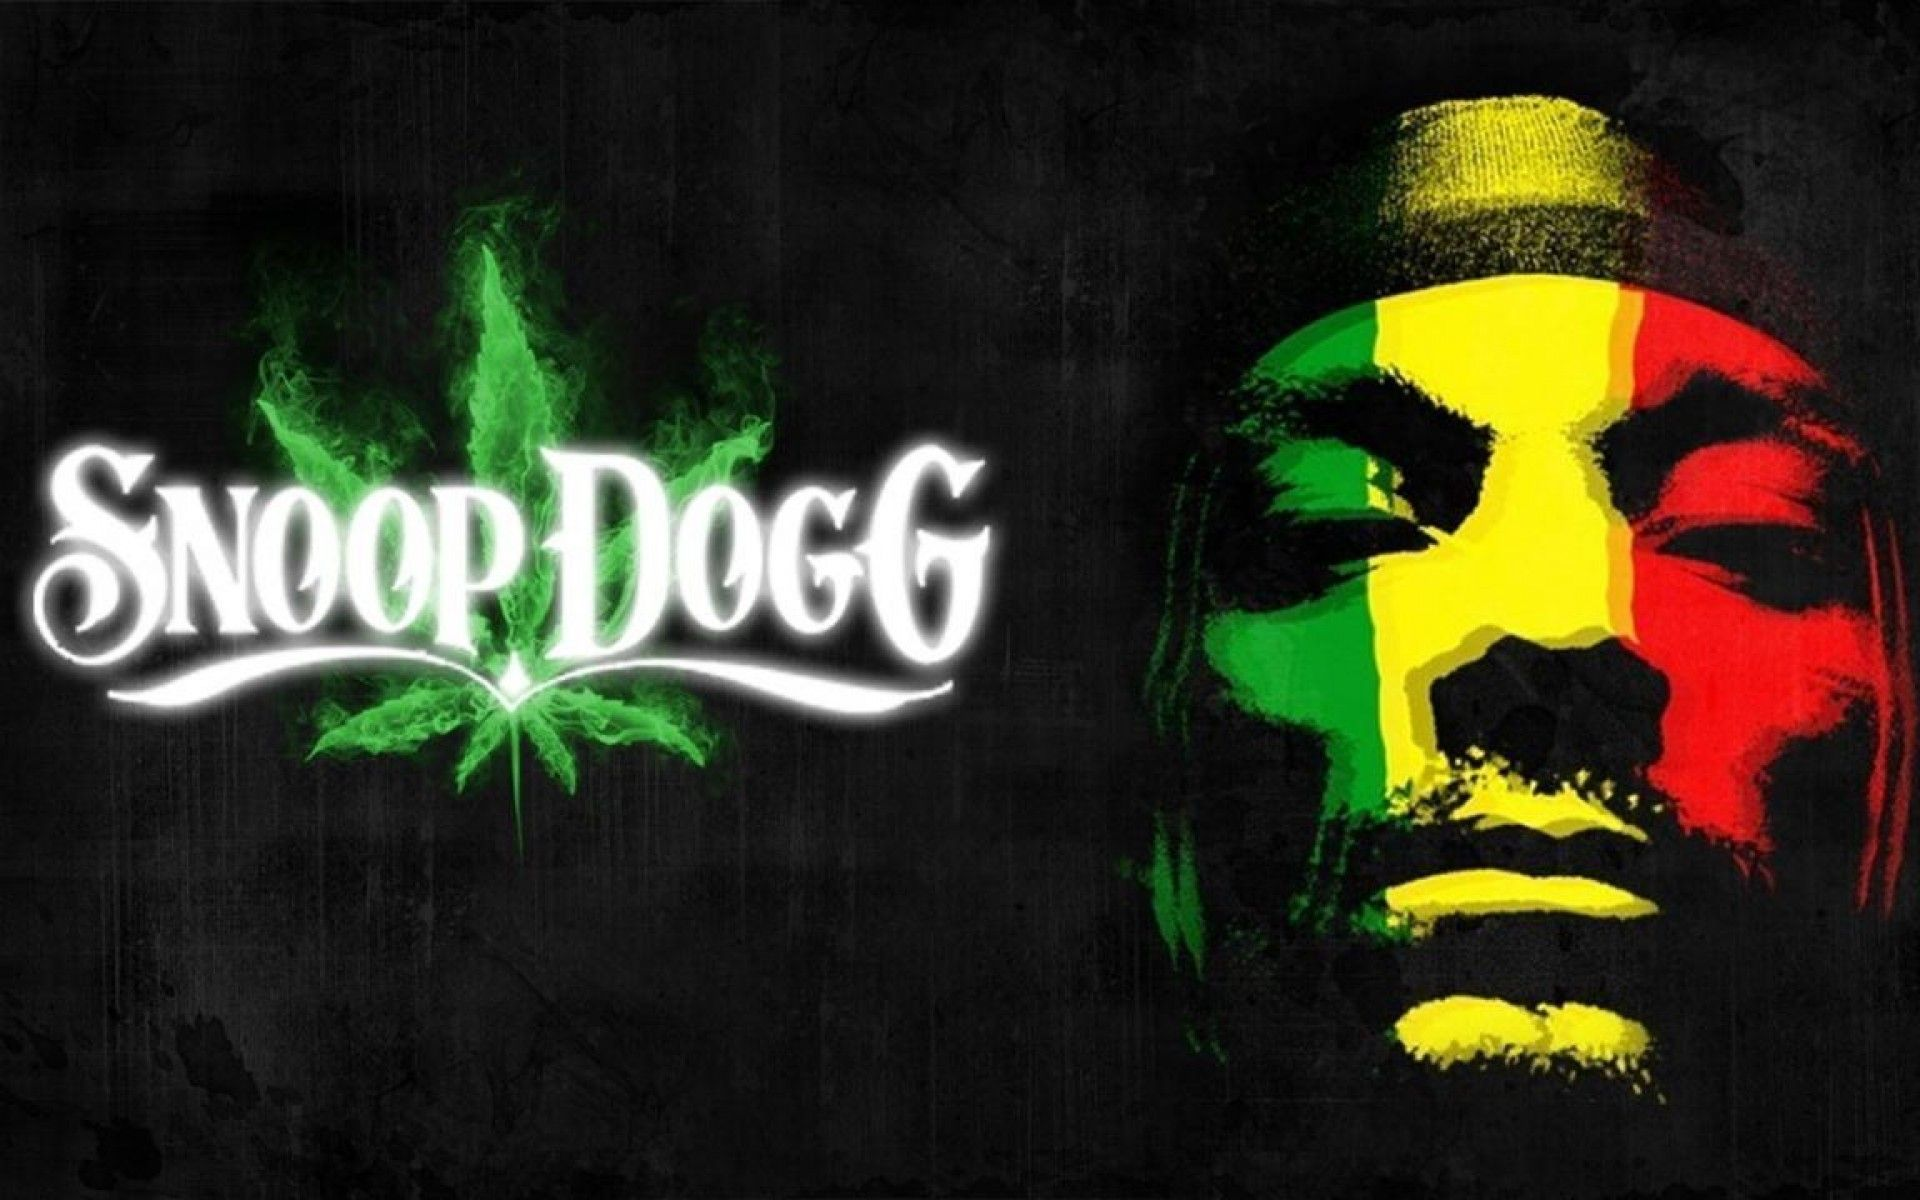 Snoop Dogg Weed Wallpaper Desktop Drug Pinterest Snoop Dogg